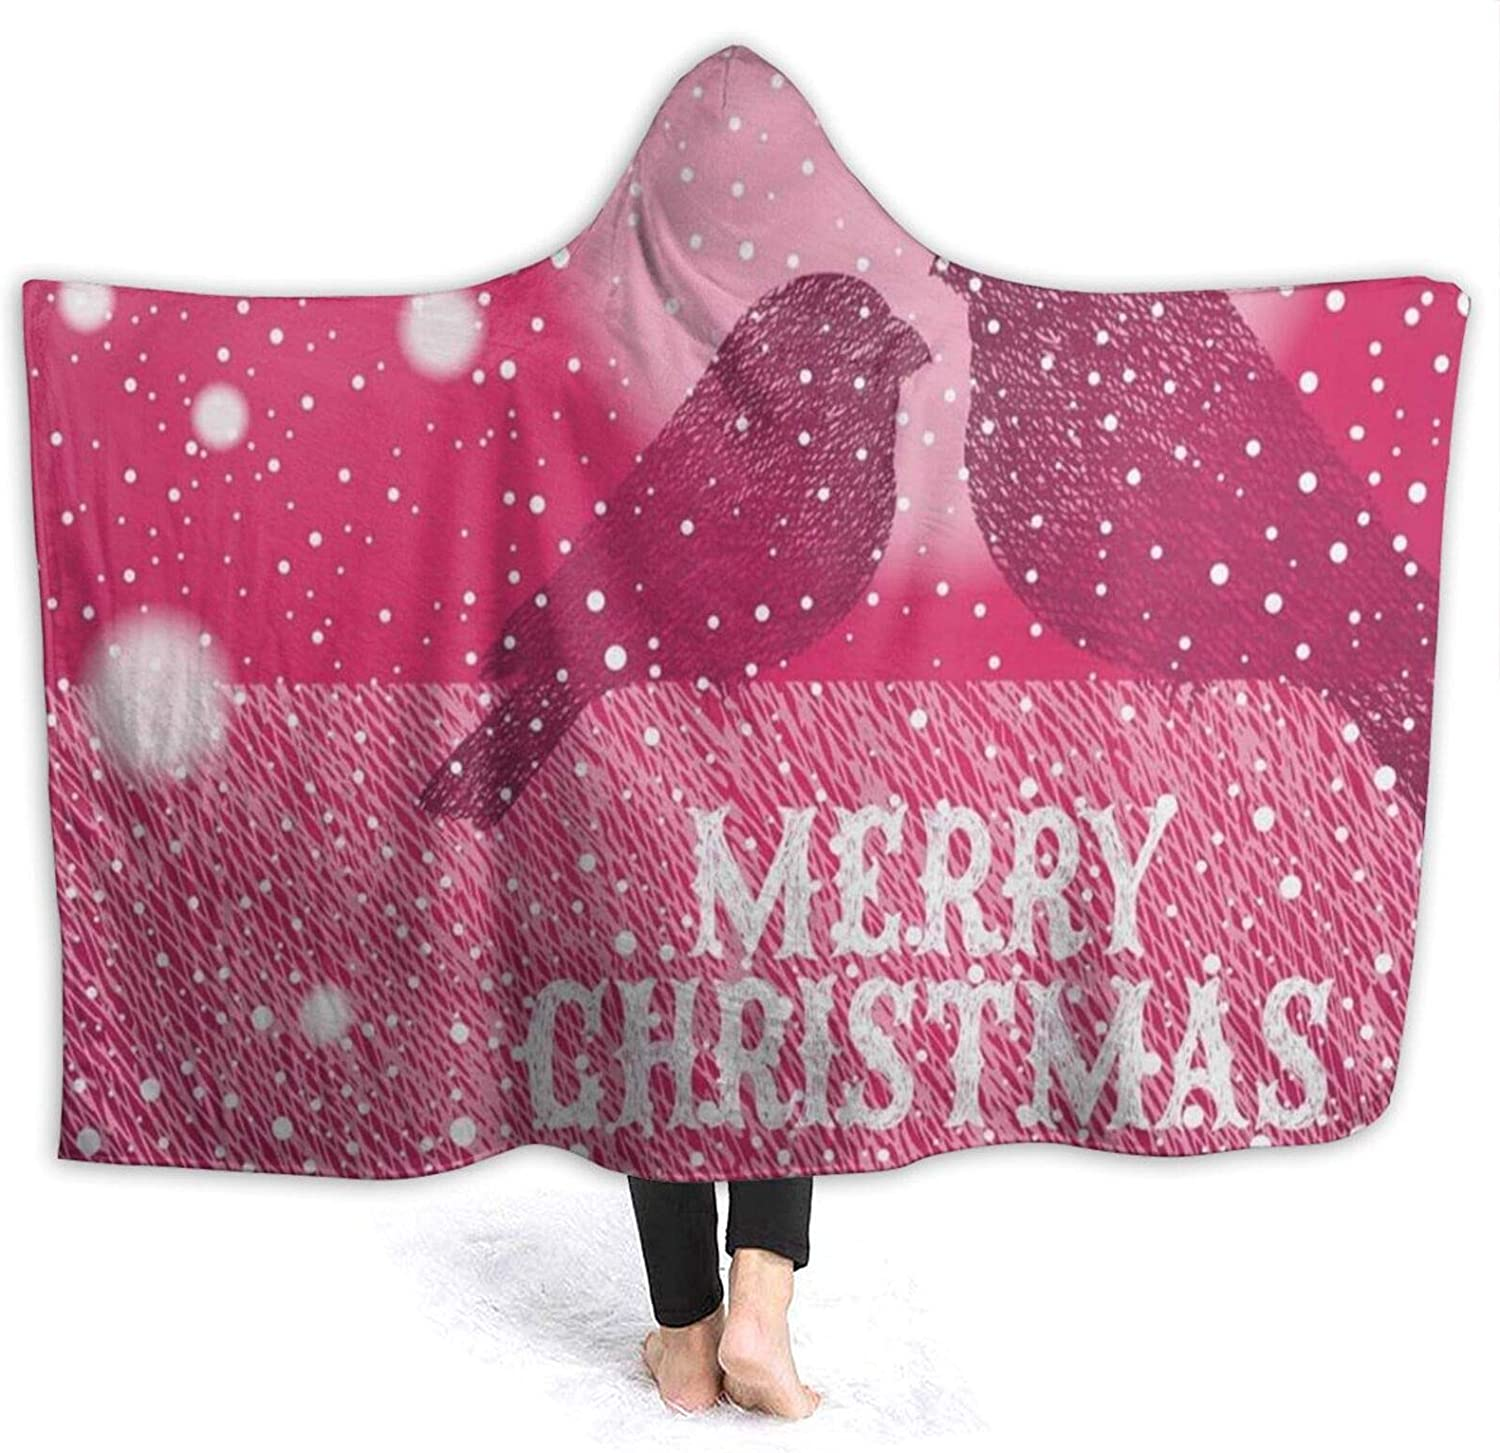 N\ A Hooded Blanket Hot Pink Christmas Snowflake Birds Love Wearable Fleece Blankets Soft Warm for Kid Adults Women Men Throw Cuddle Poncho Cloak Cape Clearance Adults/Womens/Mens Twin